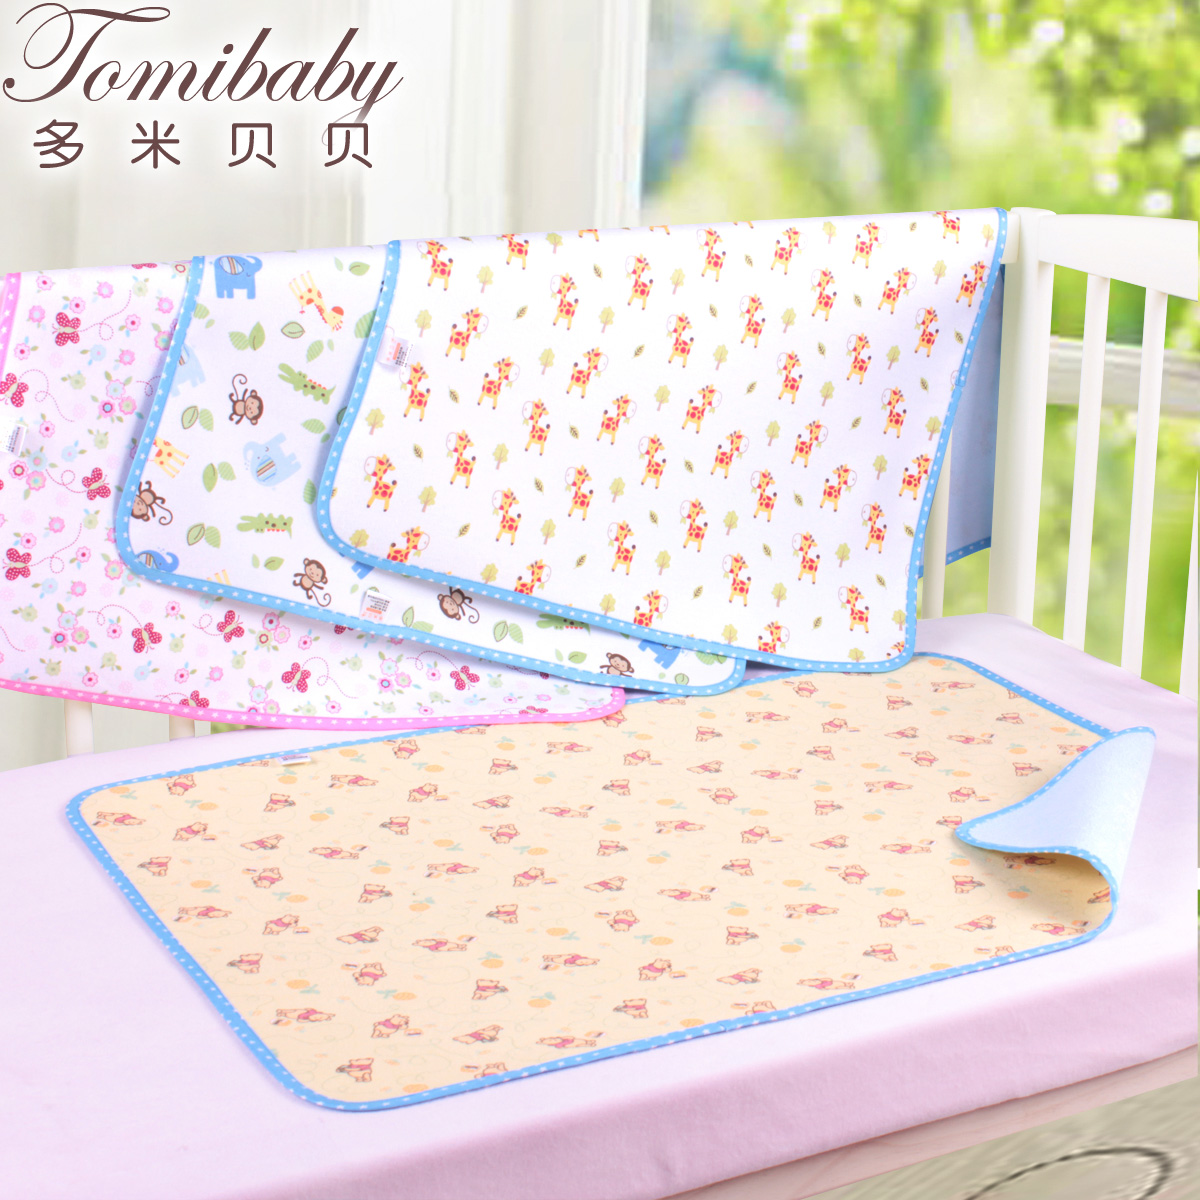 Wonderful Baby Changing Mat Ultralarge 100% Waterproof Cotton Baby Bed Sheets Bamboo  Fibre Pad Newborn Supplies In Changing Pads U0026 Covers From Mother U0026 Kids On  ...